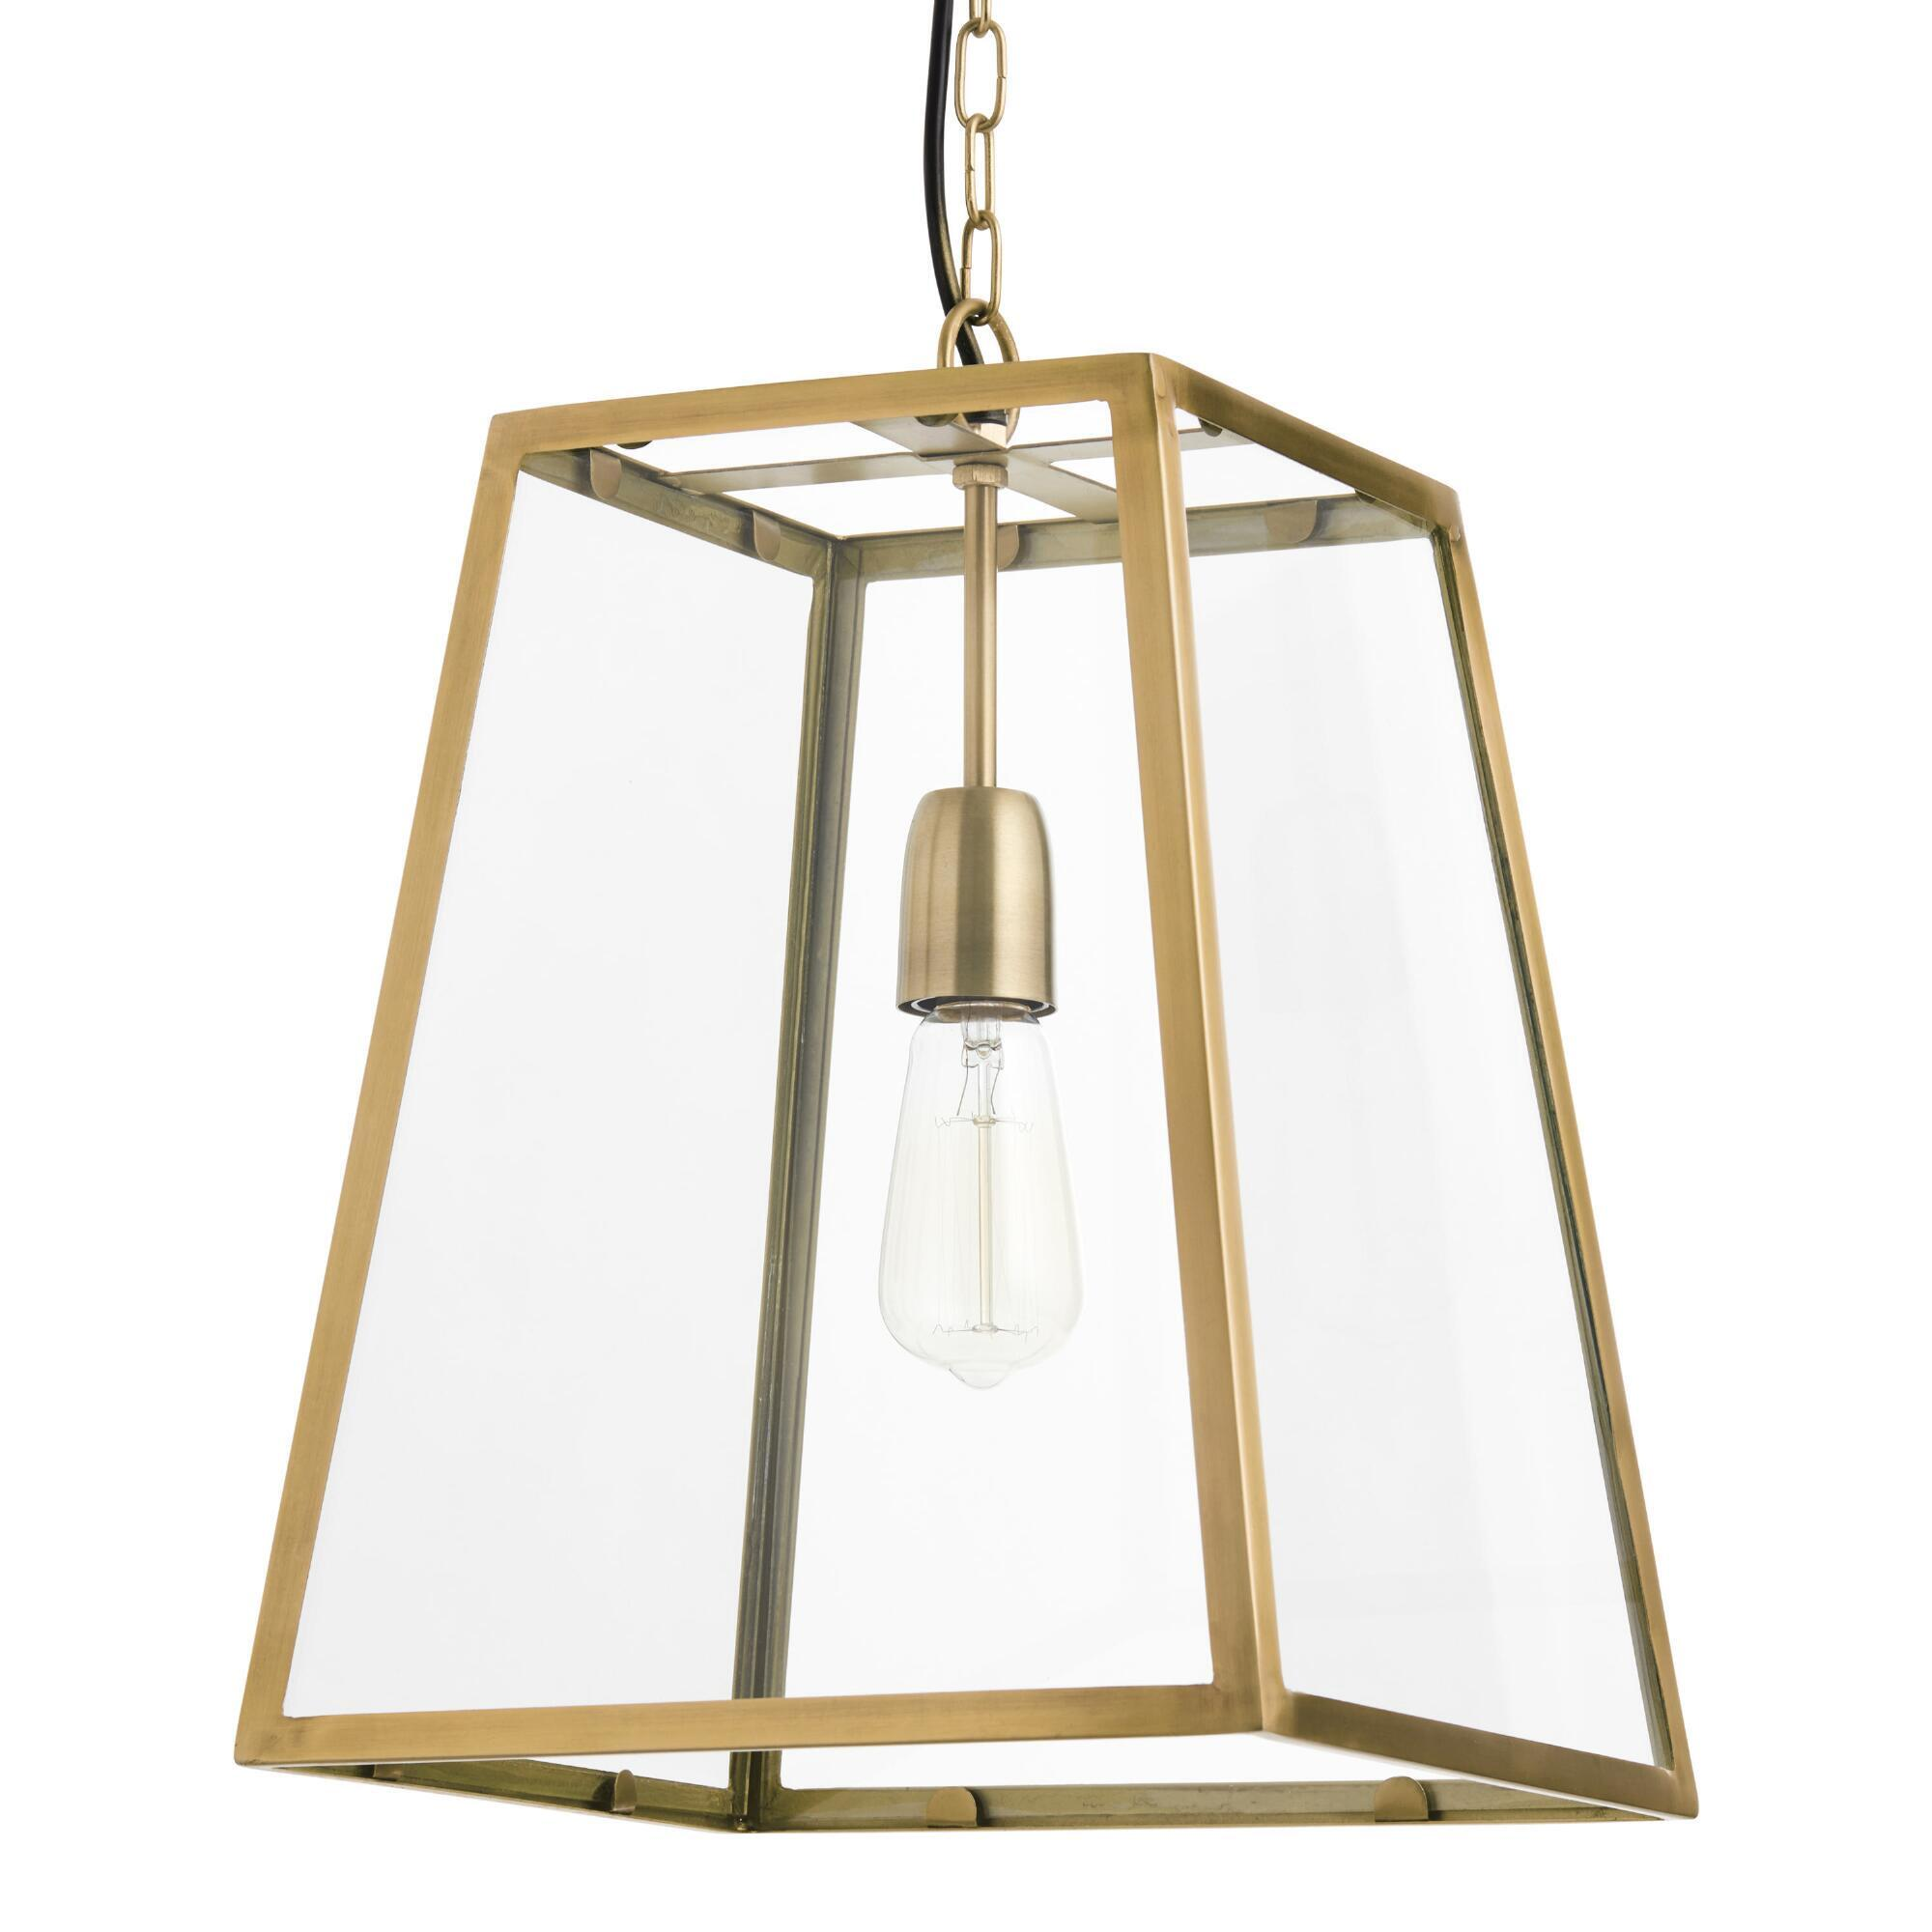 Unique Pendant Lighting Fixtures.  Four Sided Glass Hanging Pendant Lantern World Market